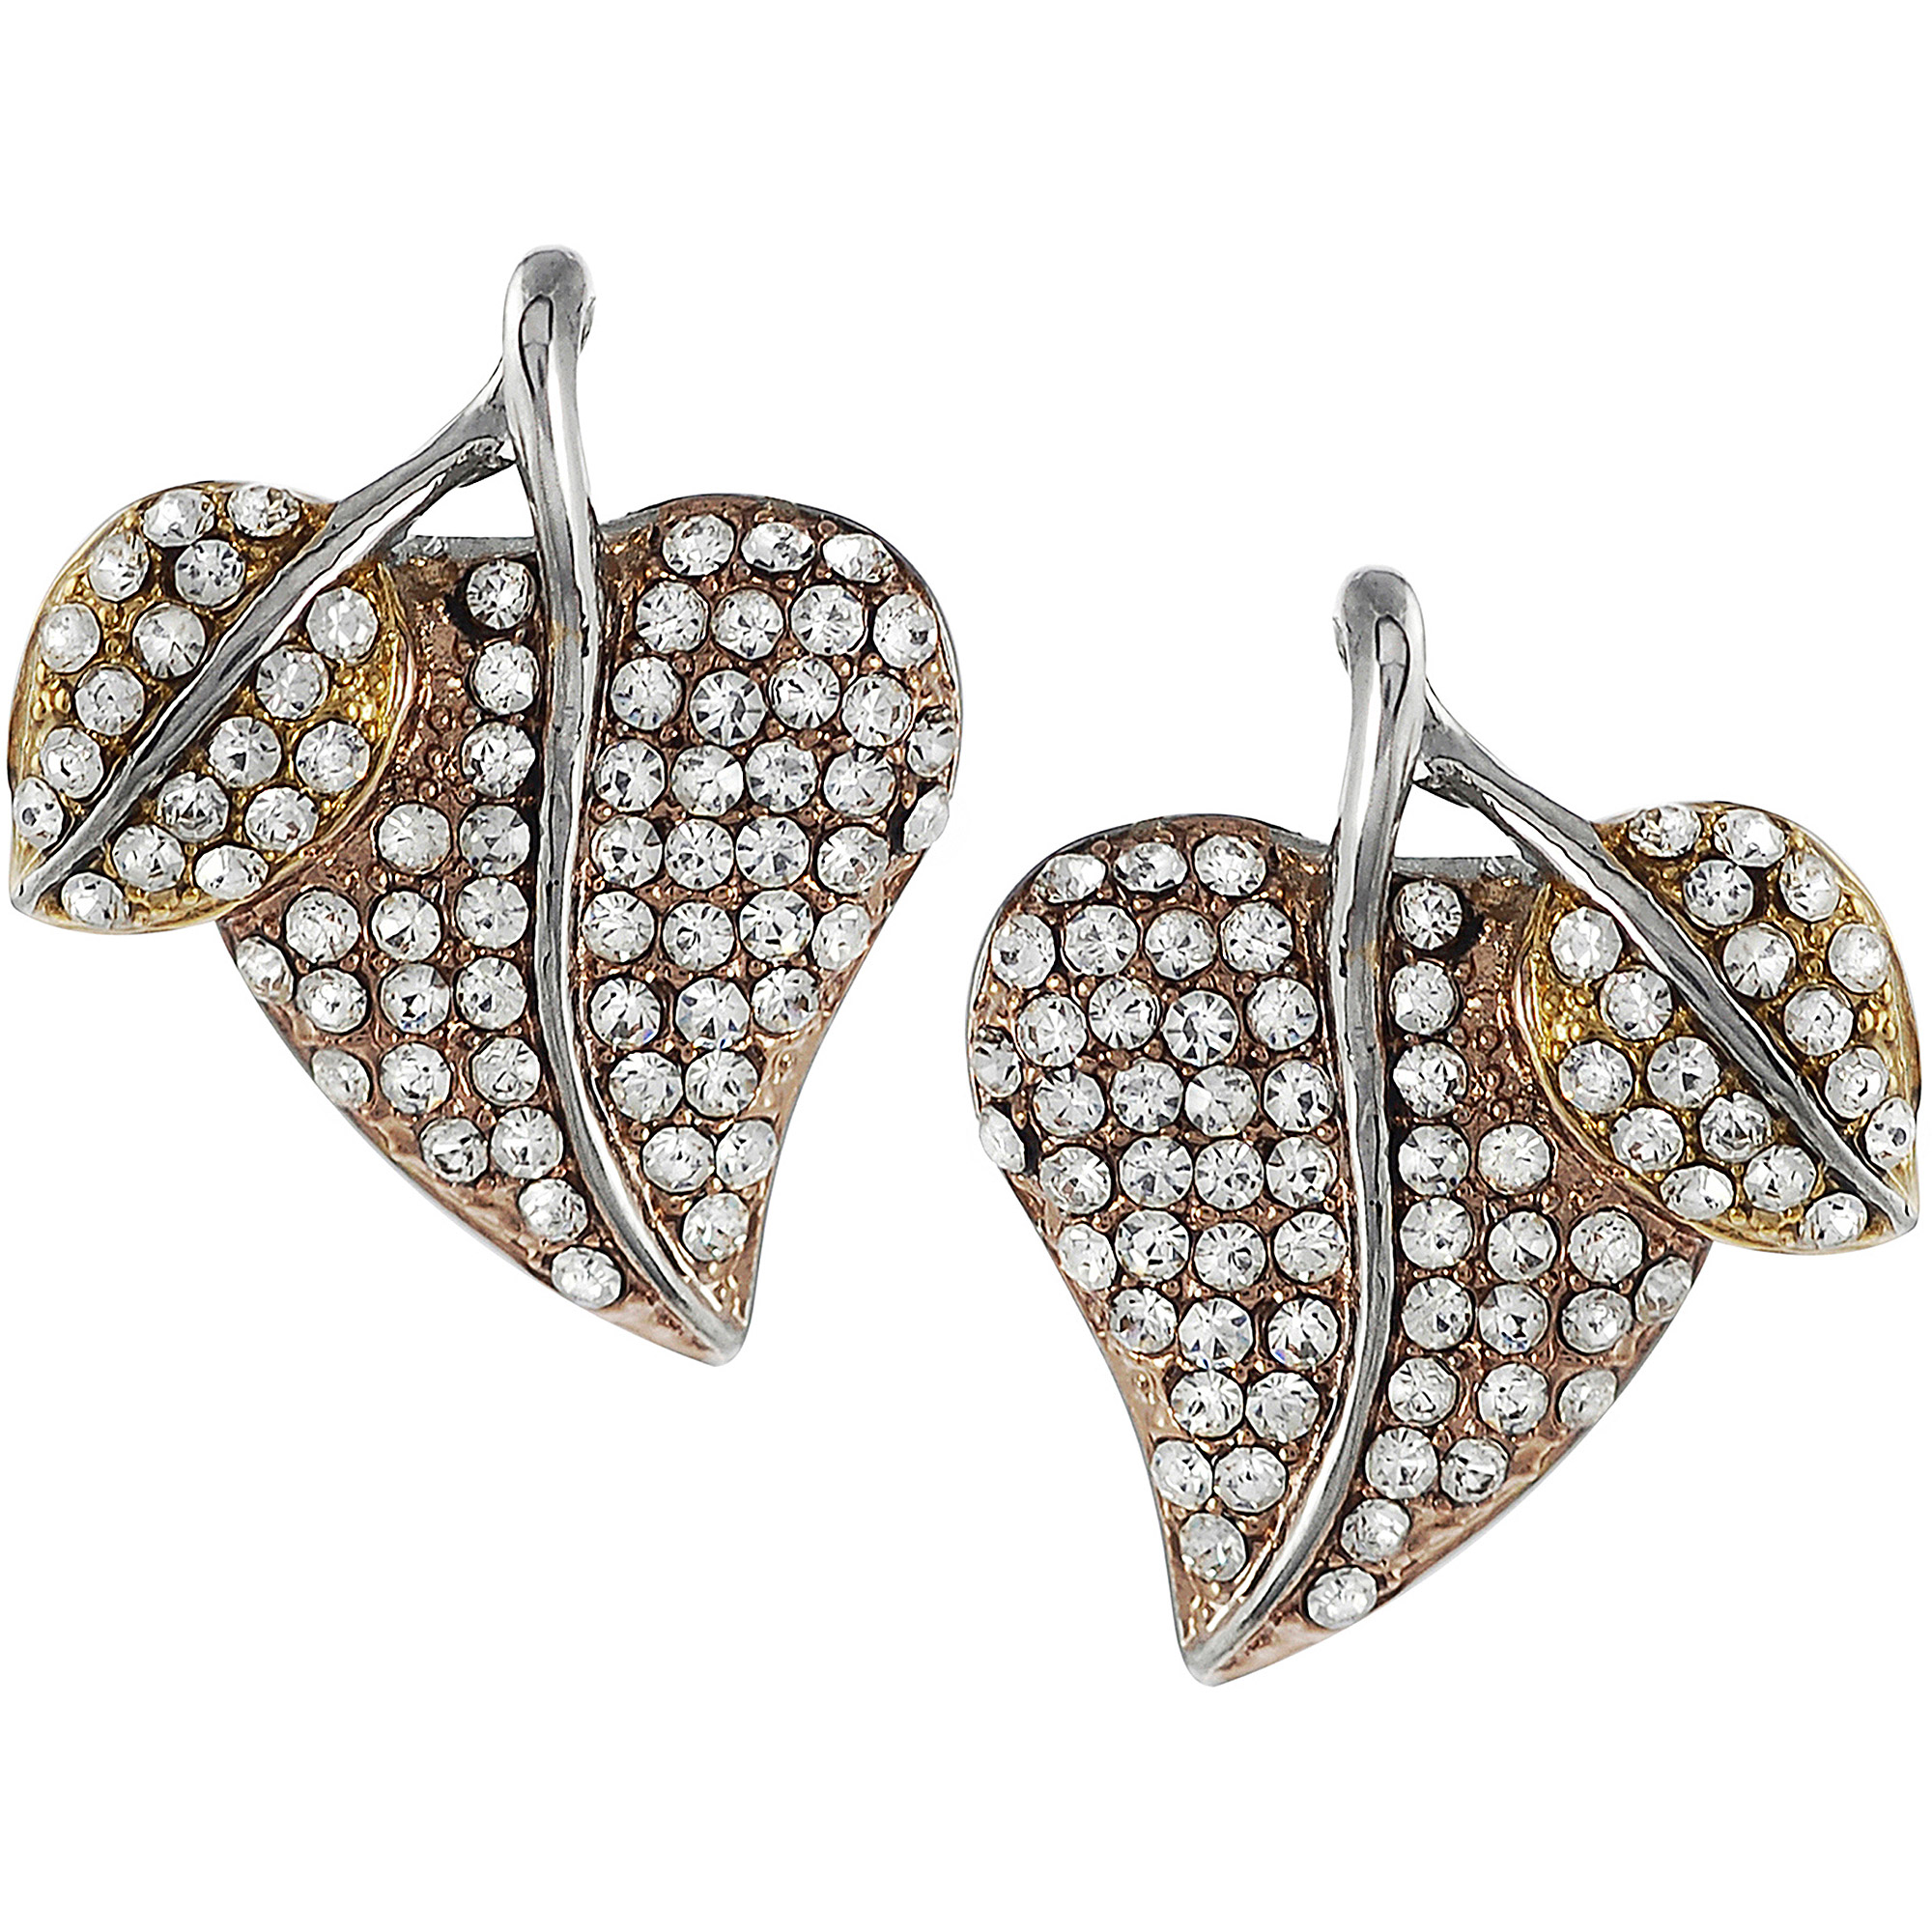 Brinley Co. Women's Stainless Steel Copper Cubic Zirconia Mod Spiral Earrings